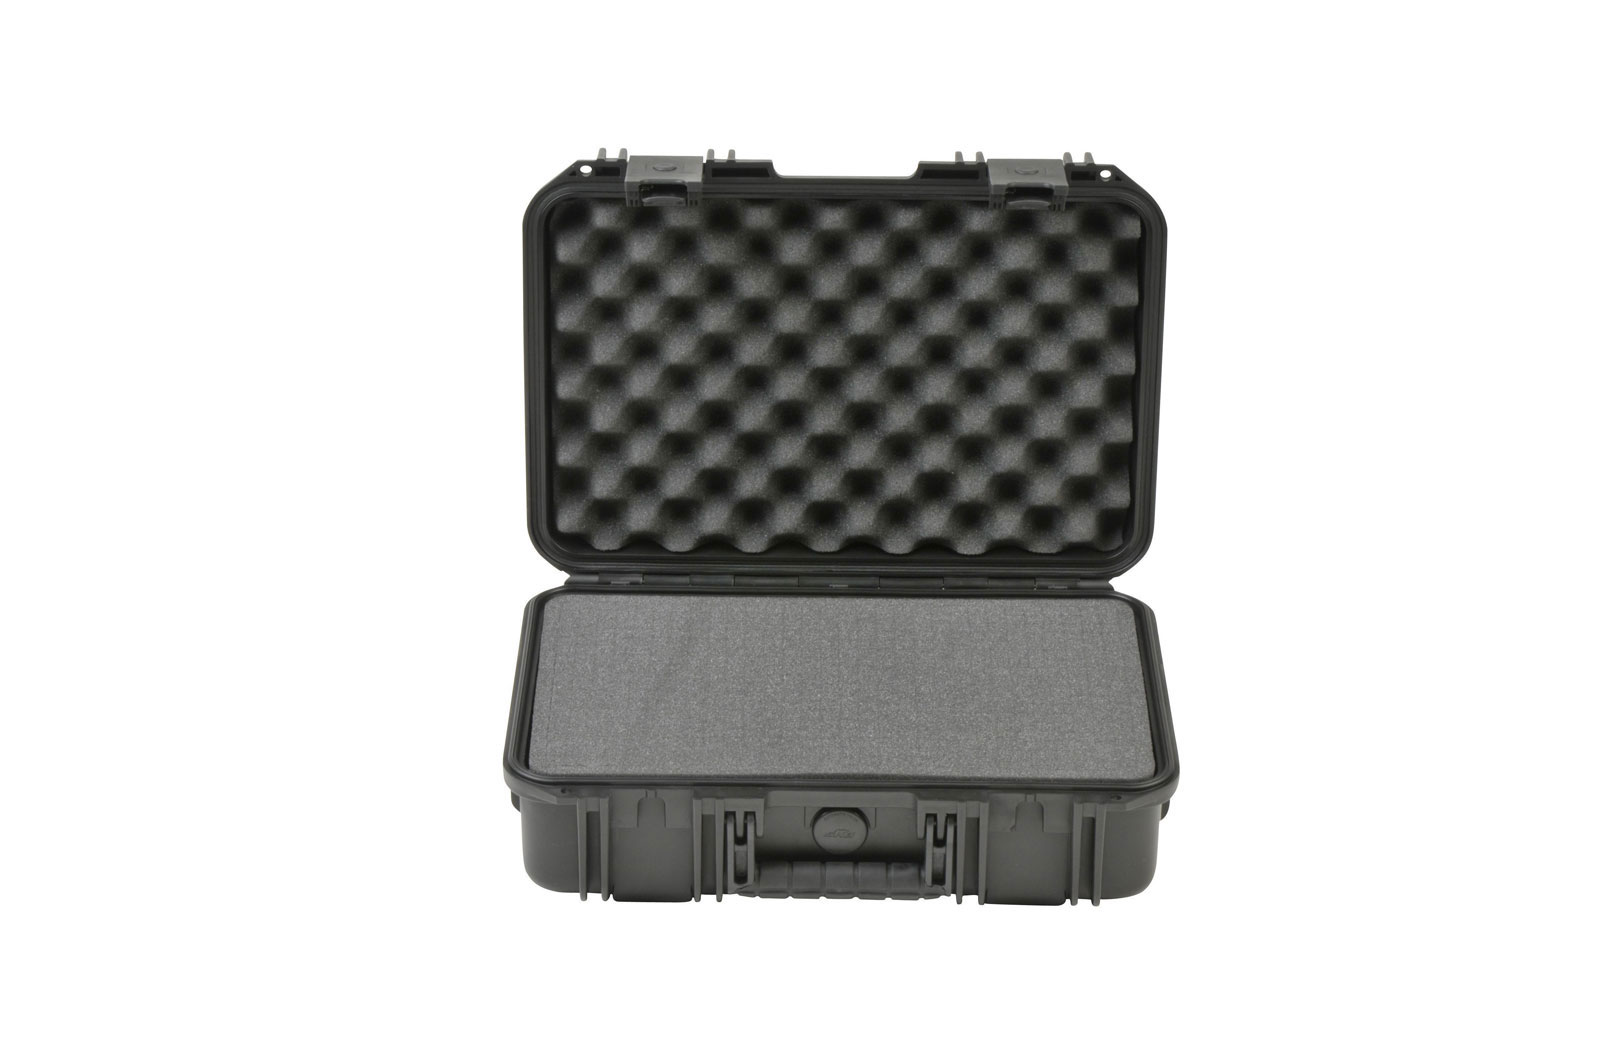 3I-1610-5B-C - UNIVERSAL WATERPROOF CASE 406 X 254 X 139 (89+50) MM WITH CUBED FOAM